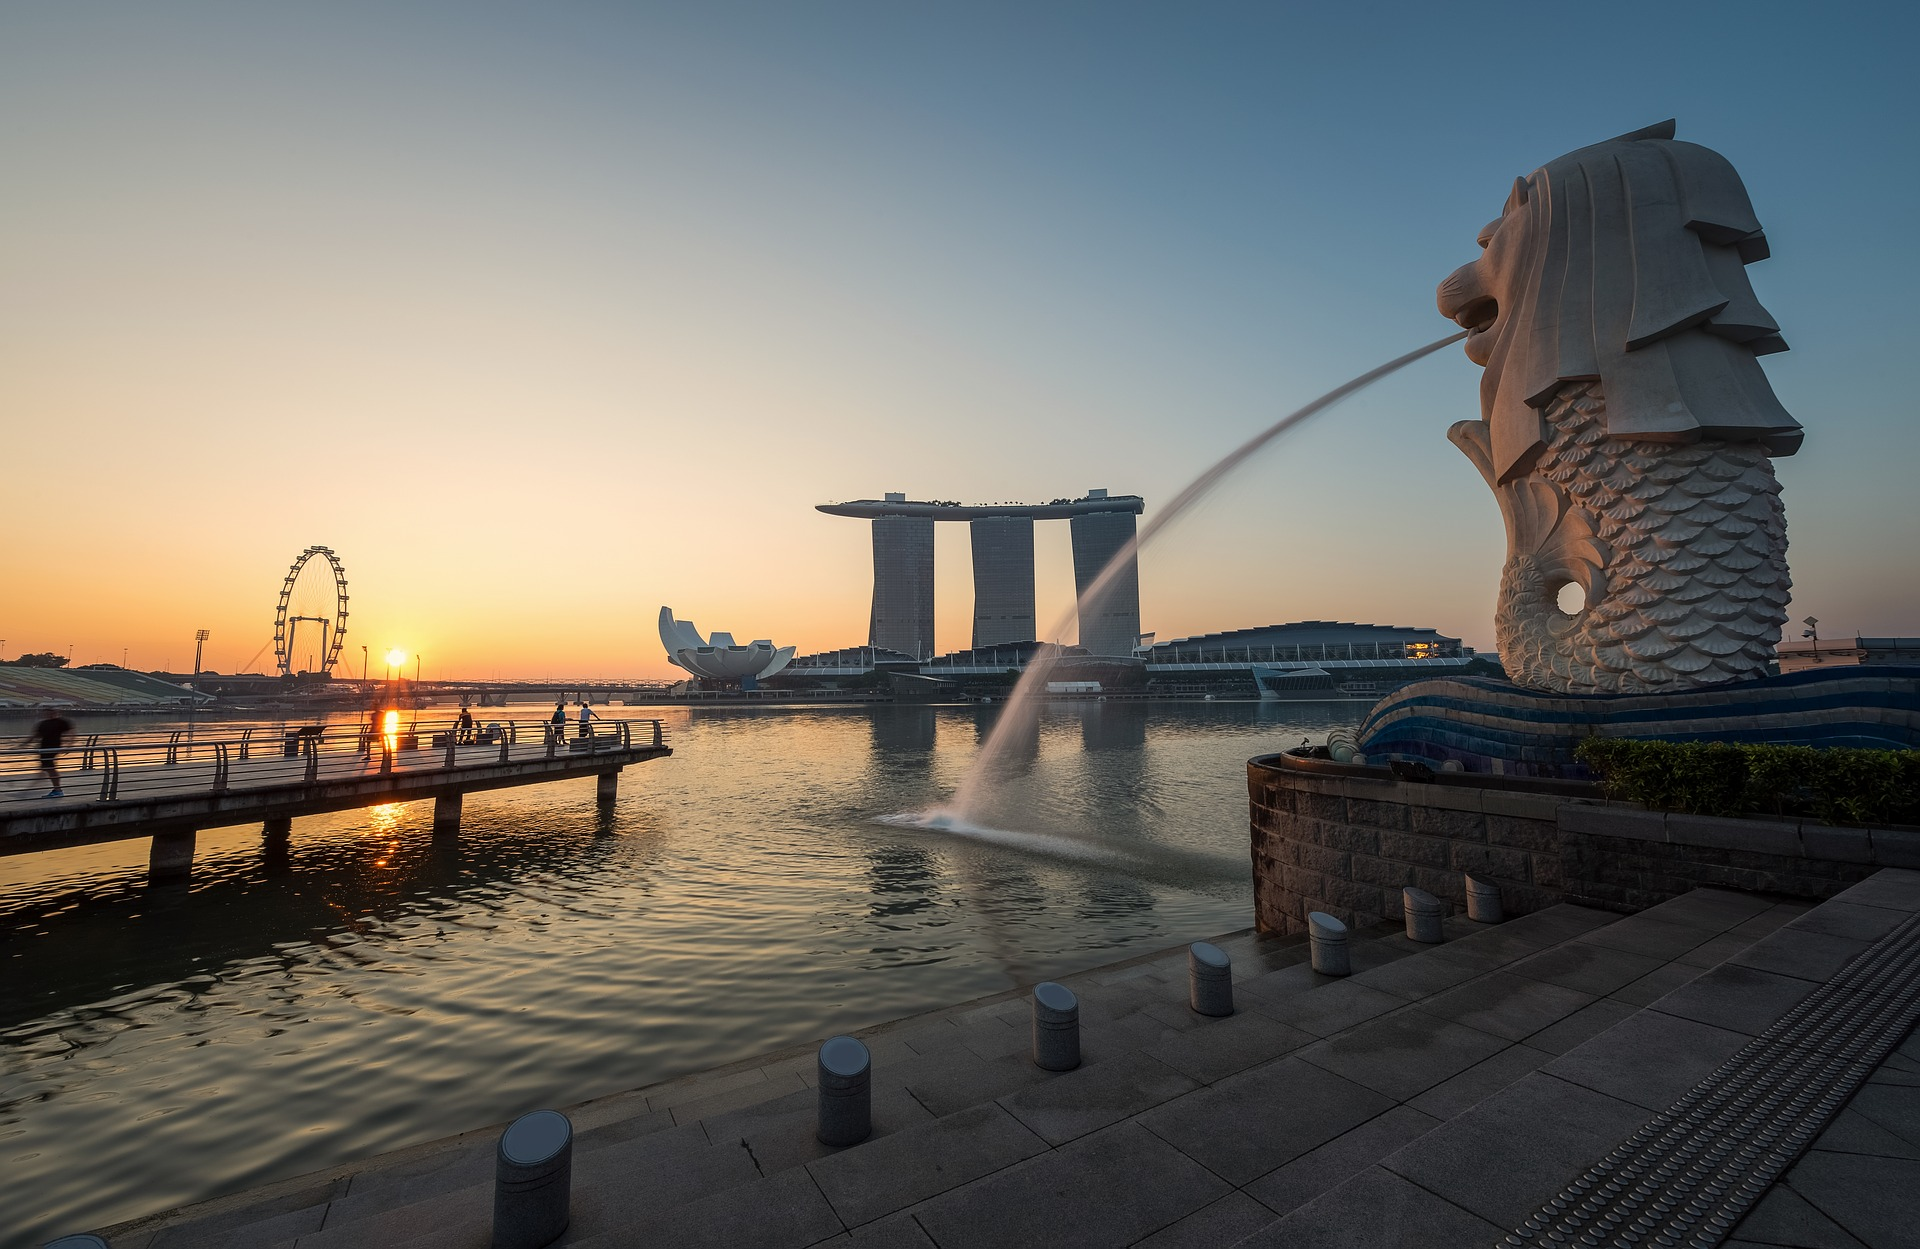 Merlion spitting water in Singapore